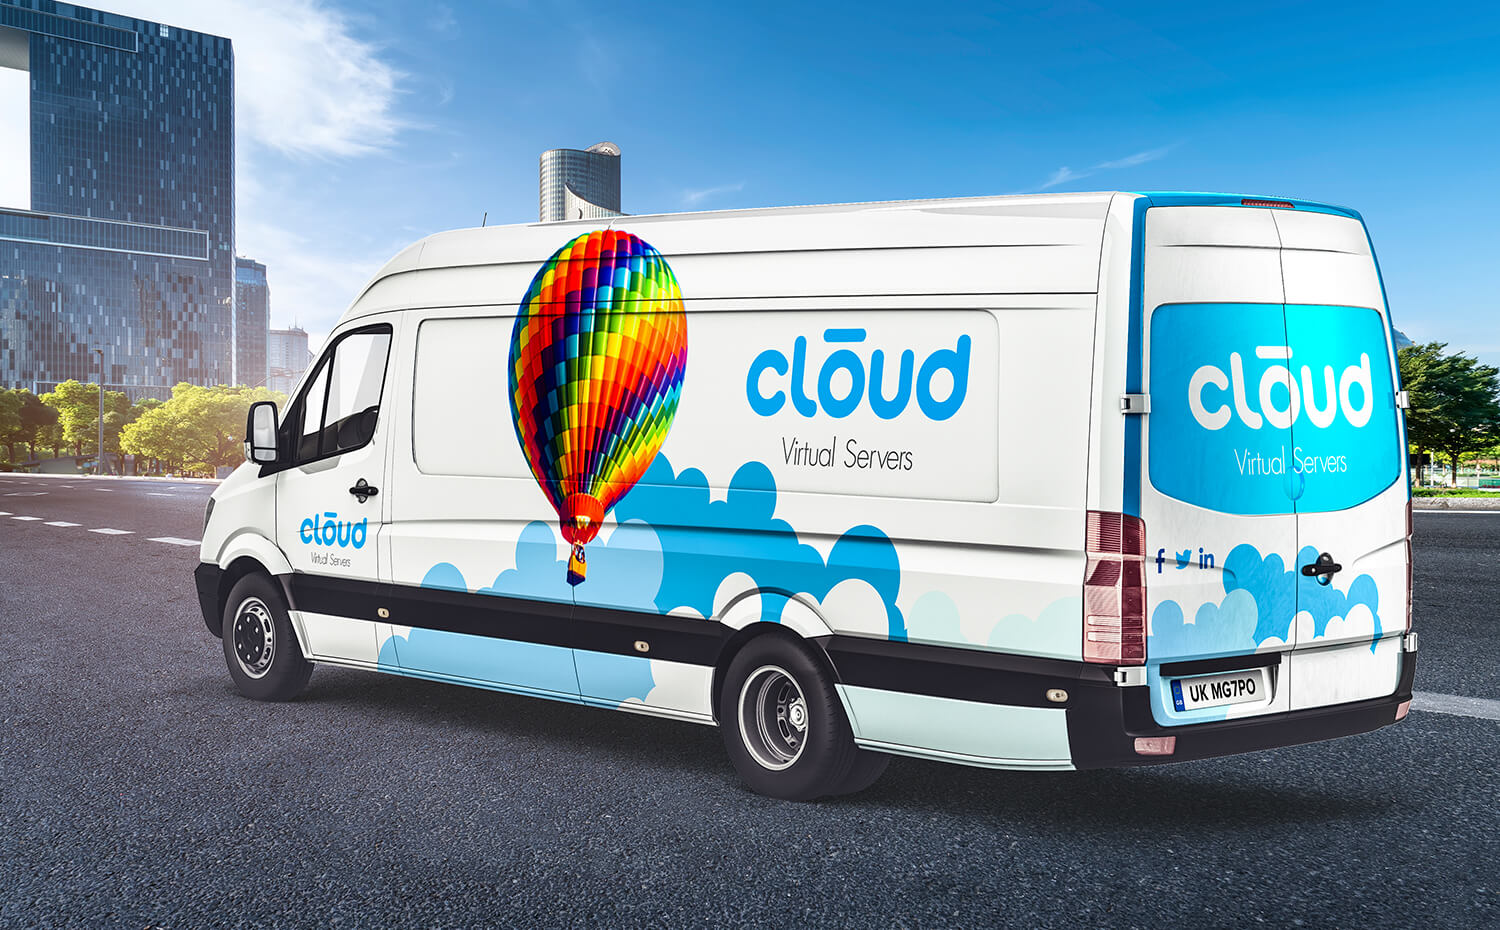 cloud virtual servers - Vehicle Wrap